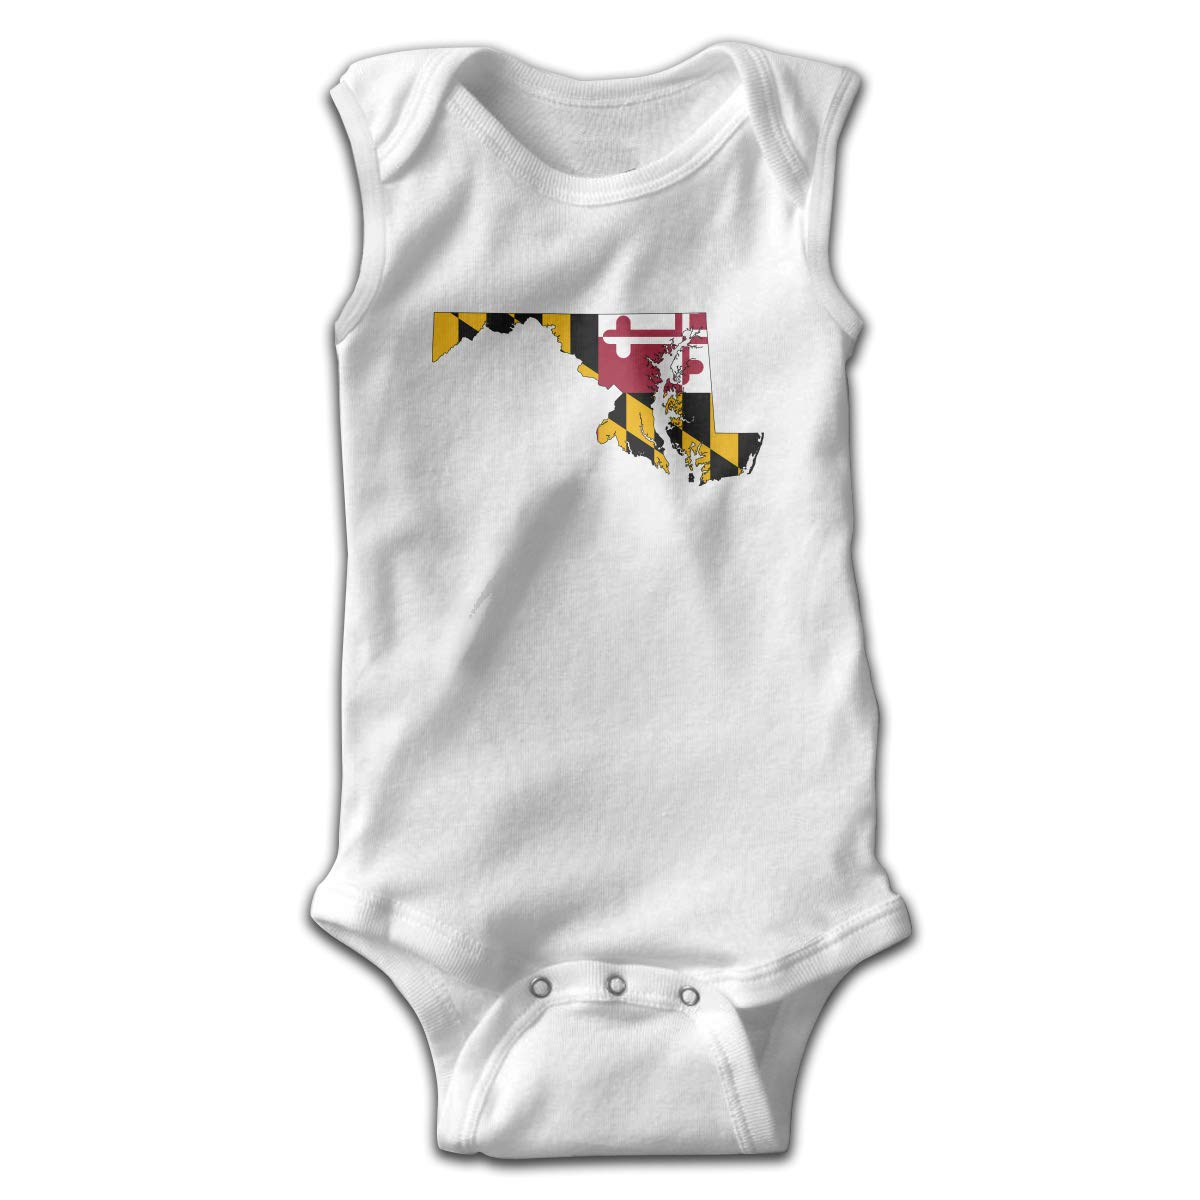 Efbj Toddler Baby Boys Rompers Sleeveless Cotton Jumpsuit,Maryland State Flag Outfit Winter Pajamas